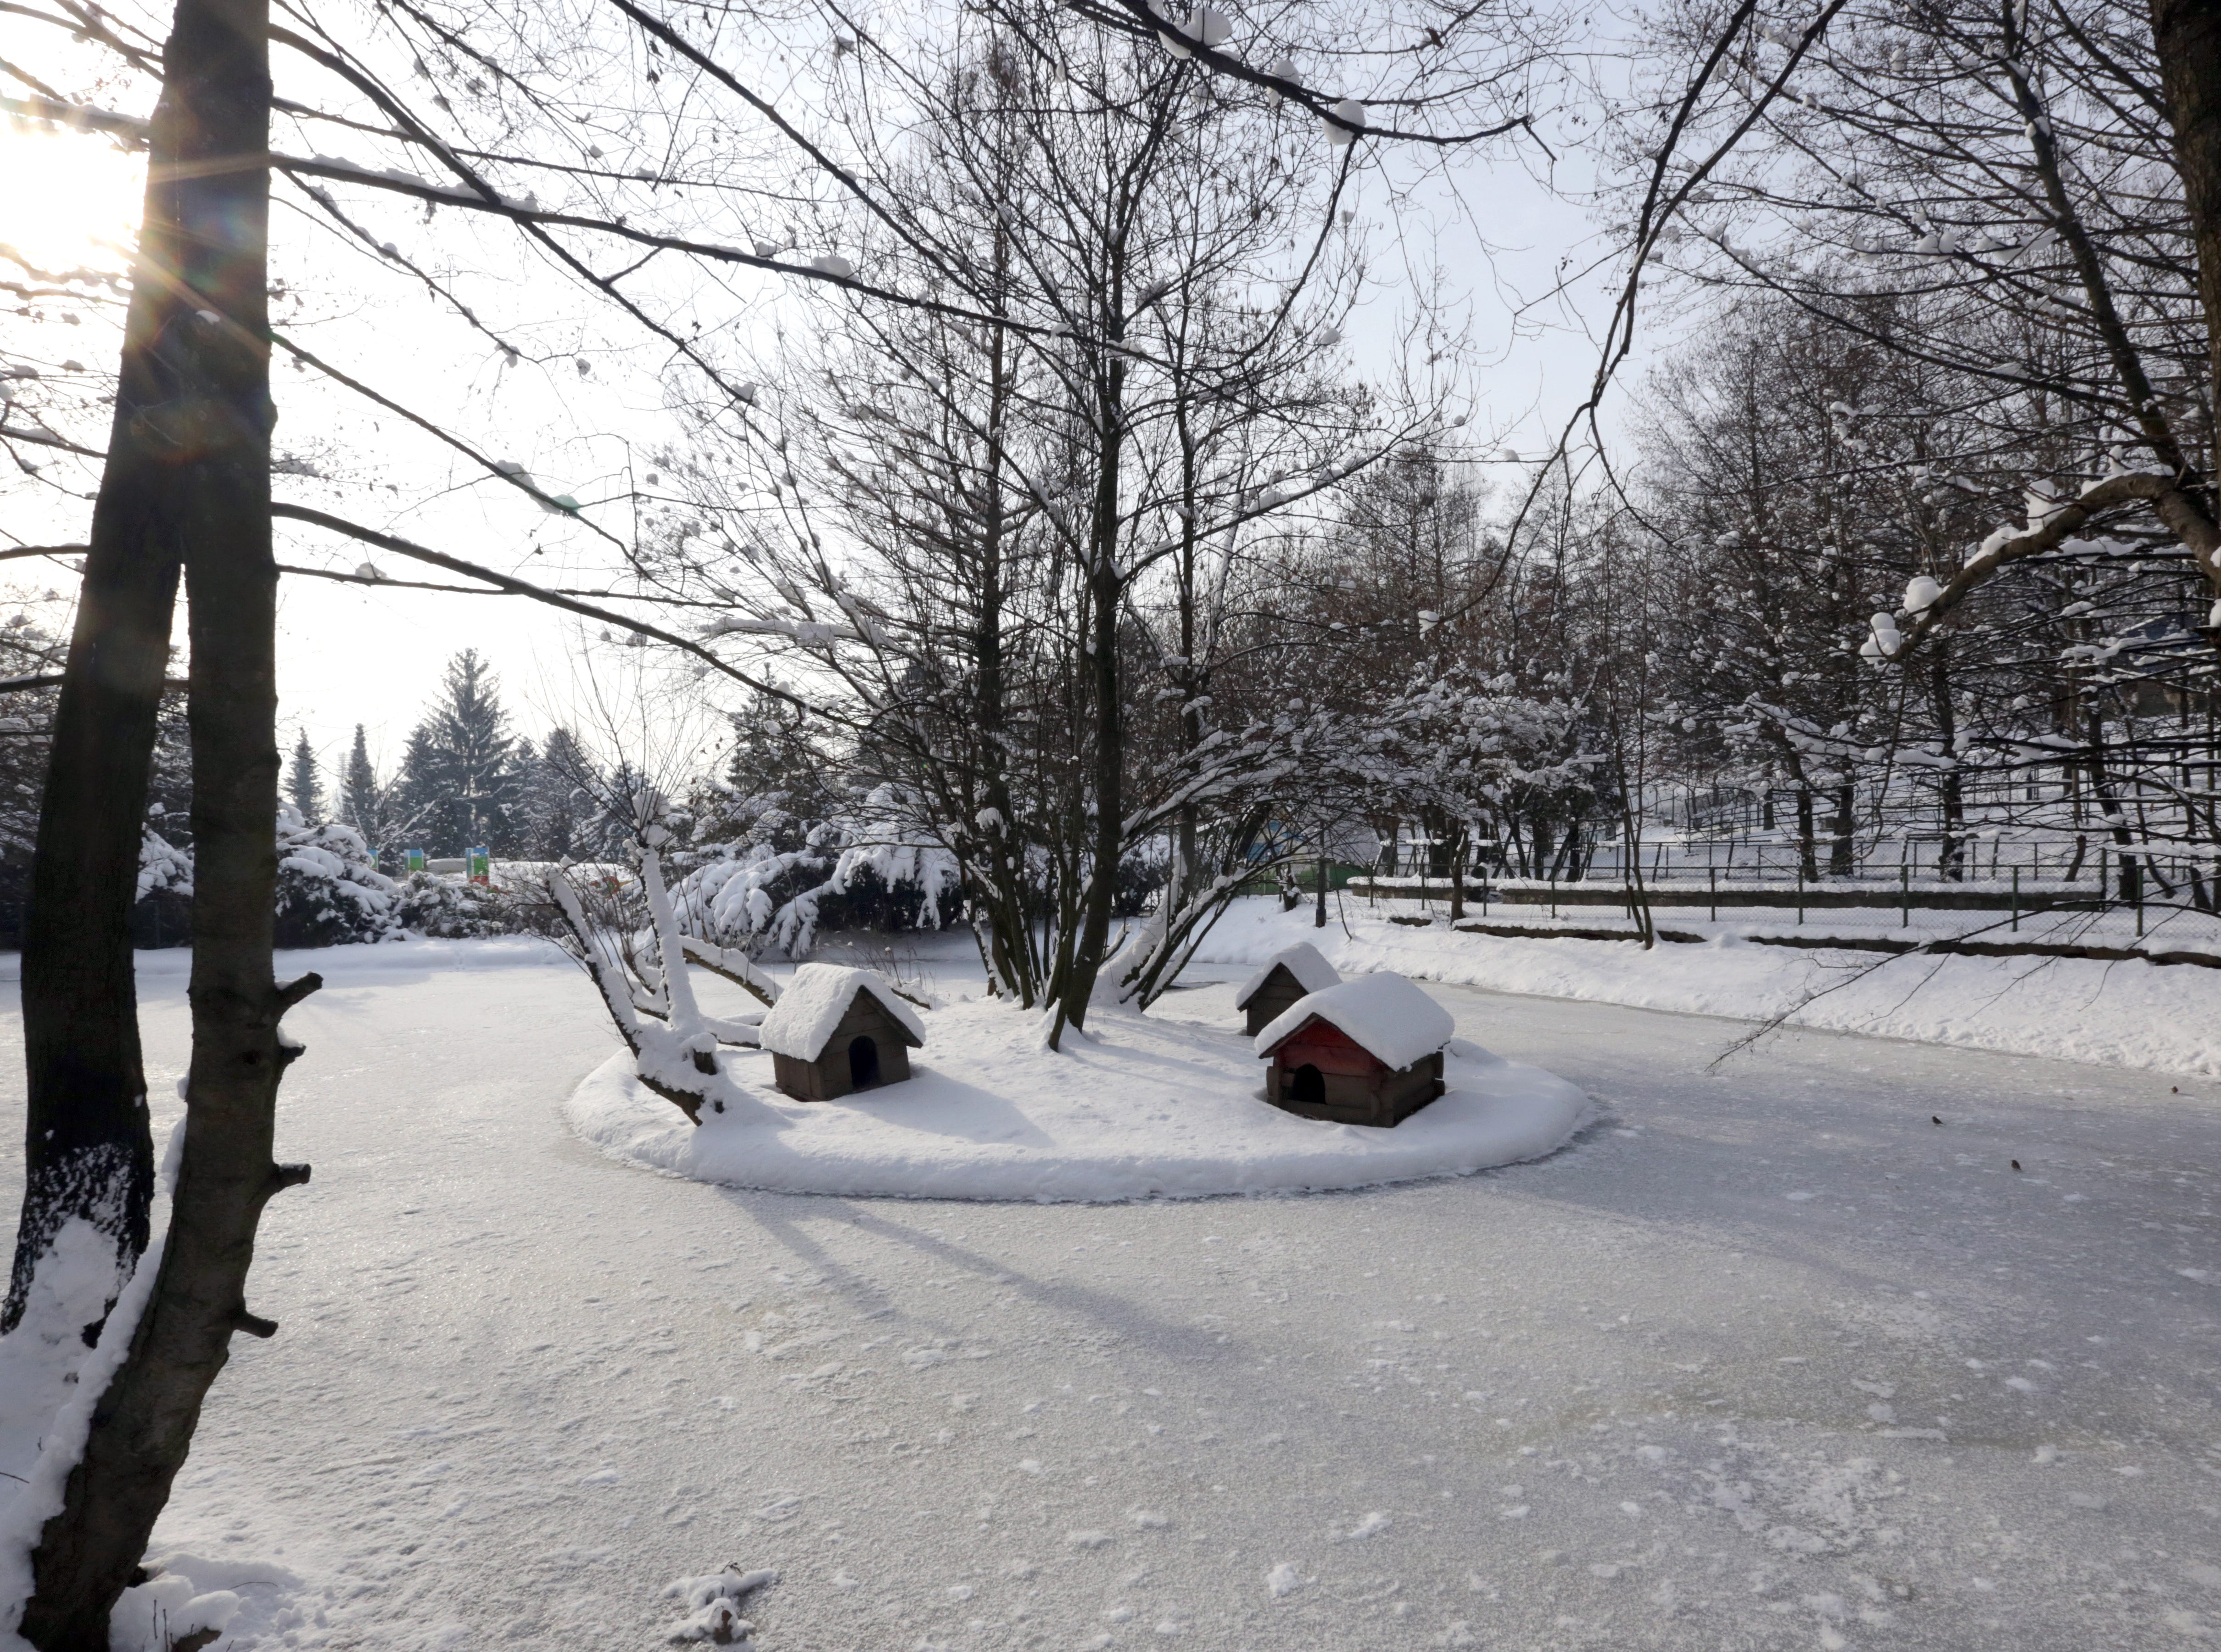 A frozen pond is covered in snow at an animal enclosure at the zoo in Sarajevo, Bosnia and Herzegovina on Jan. 5, 2019.